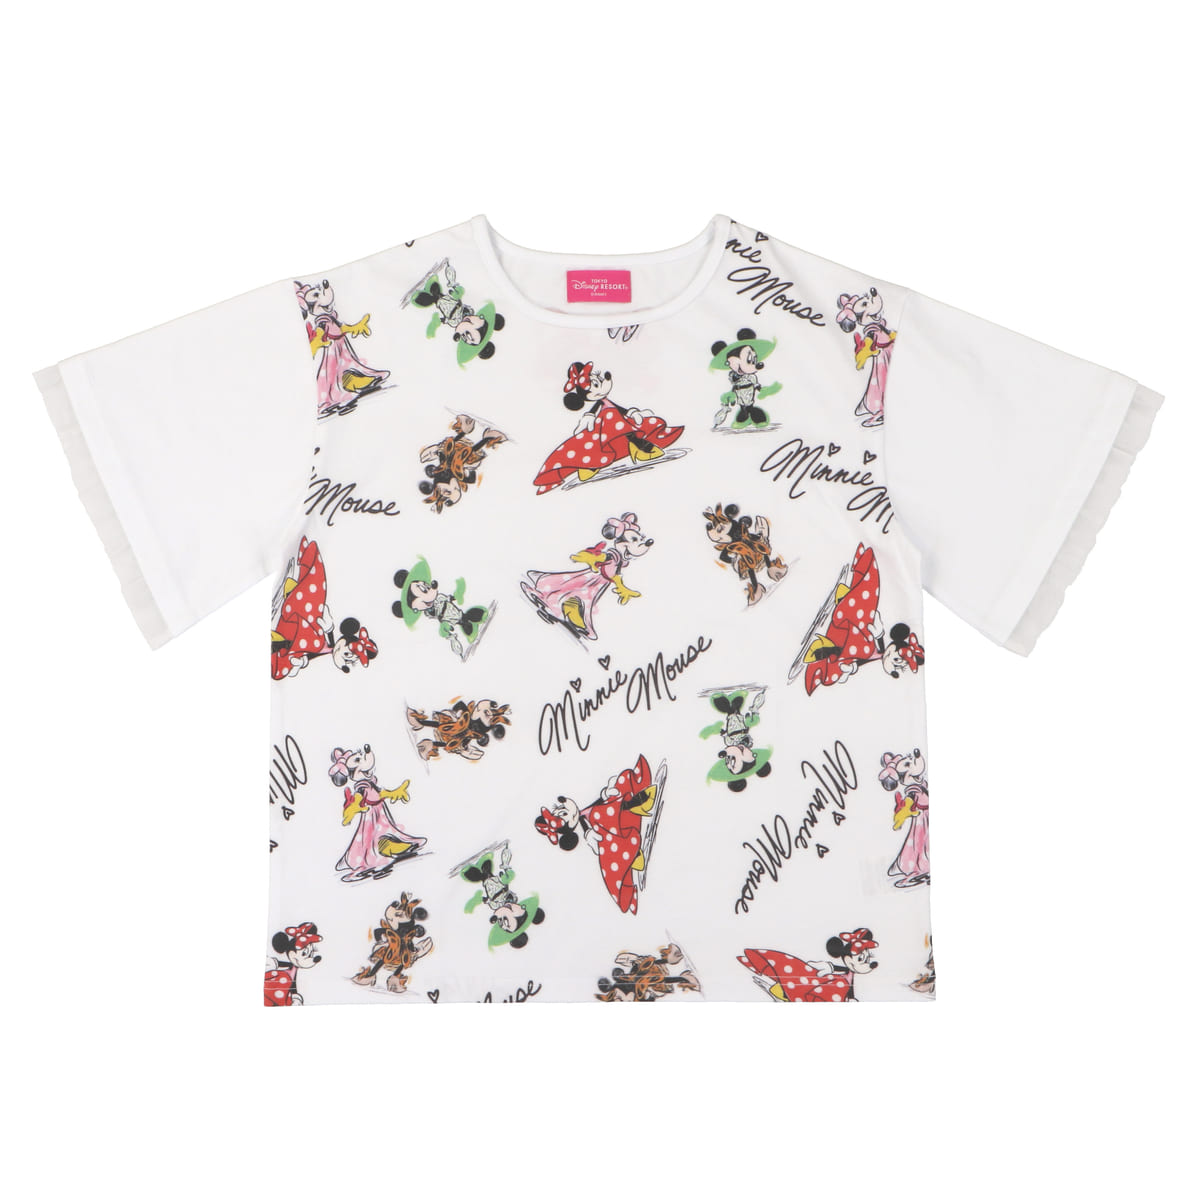 Tシャツ 総柄